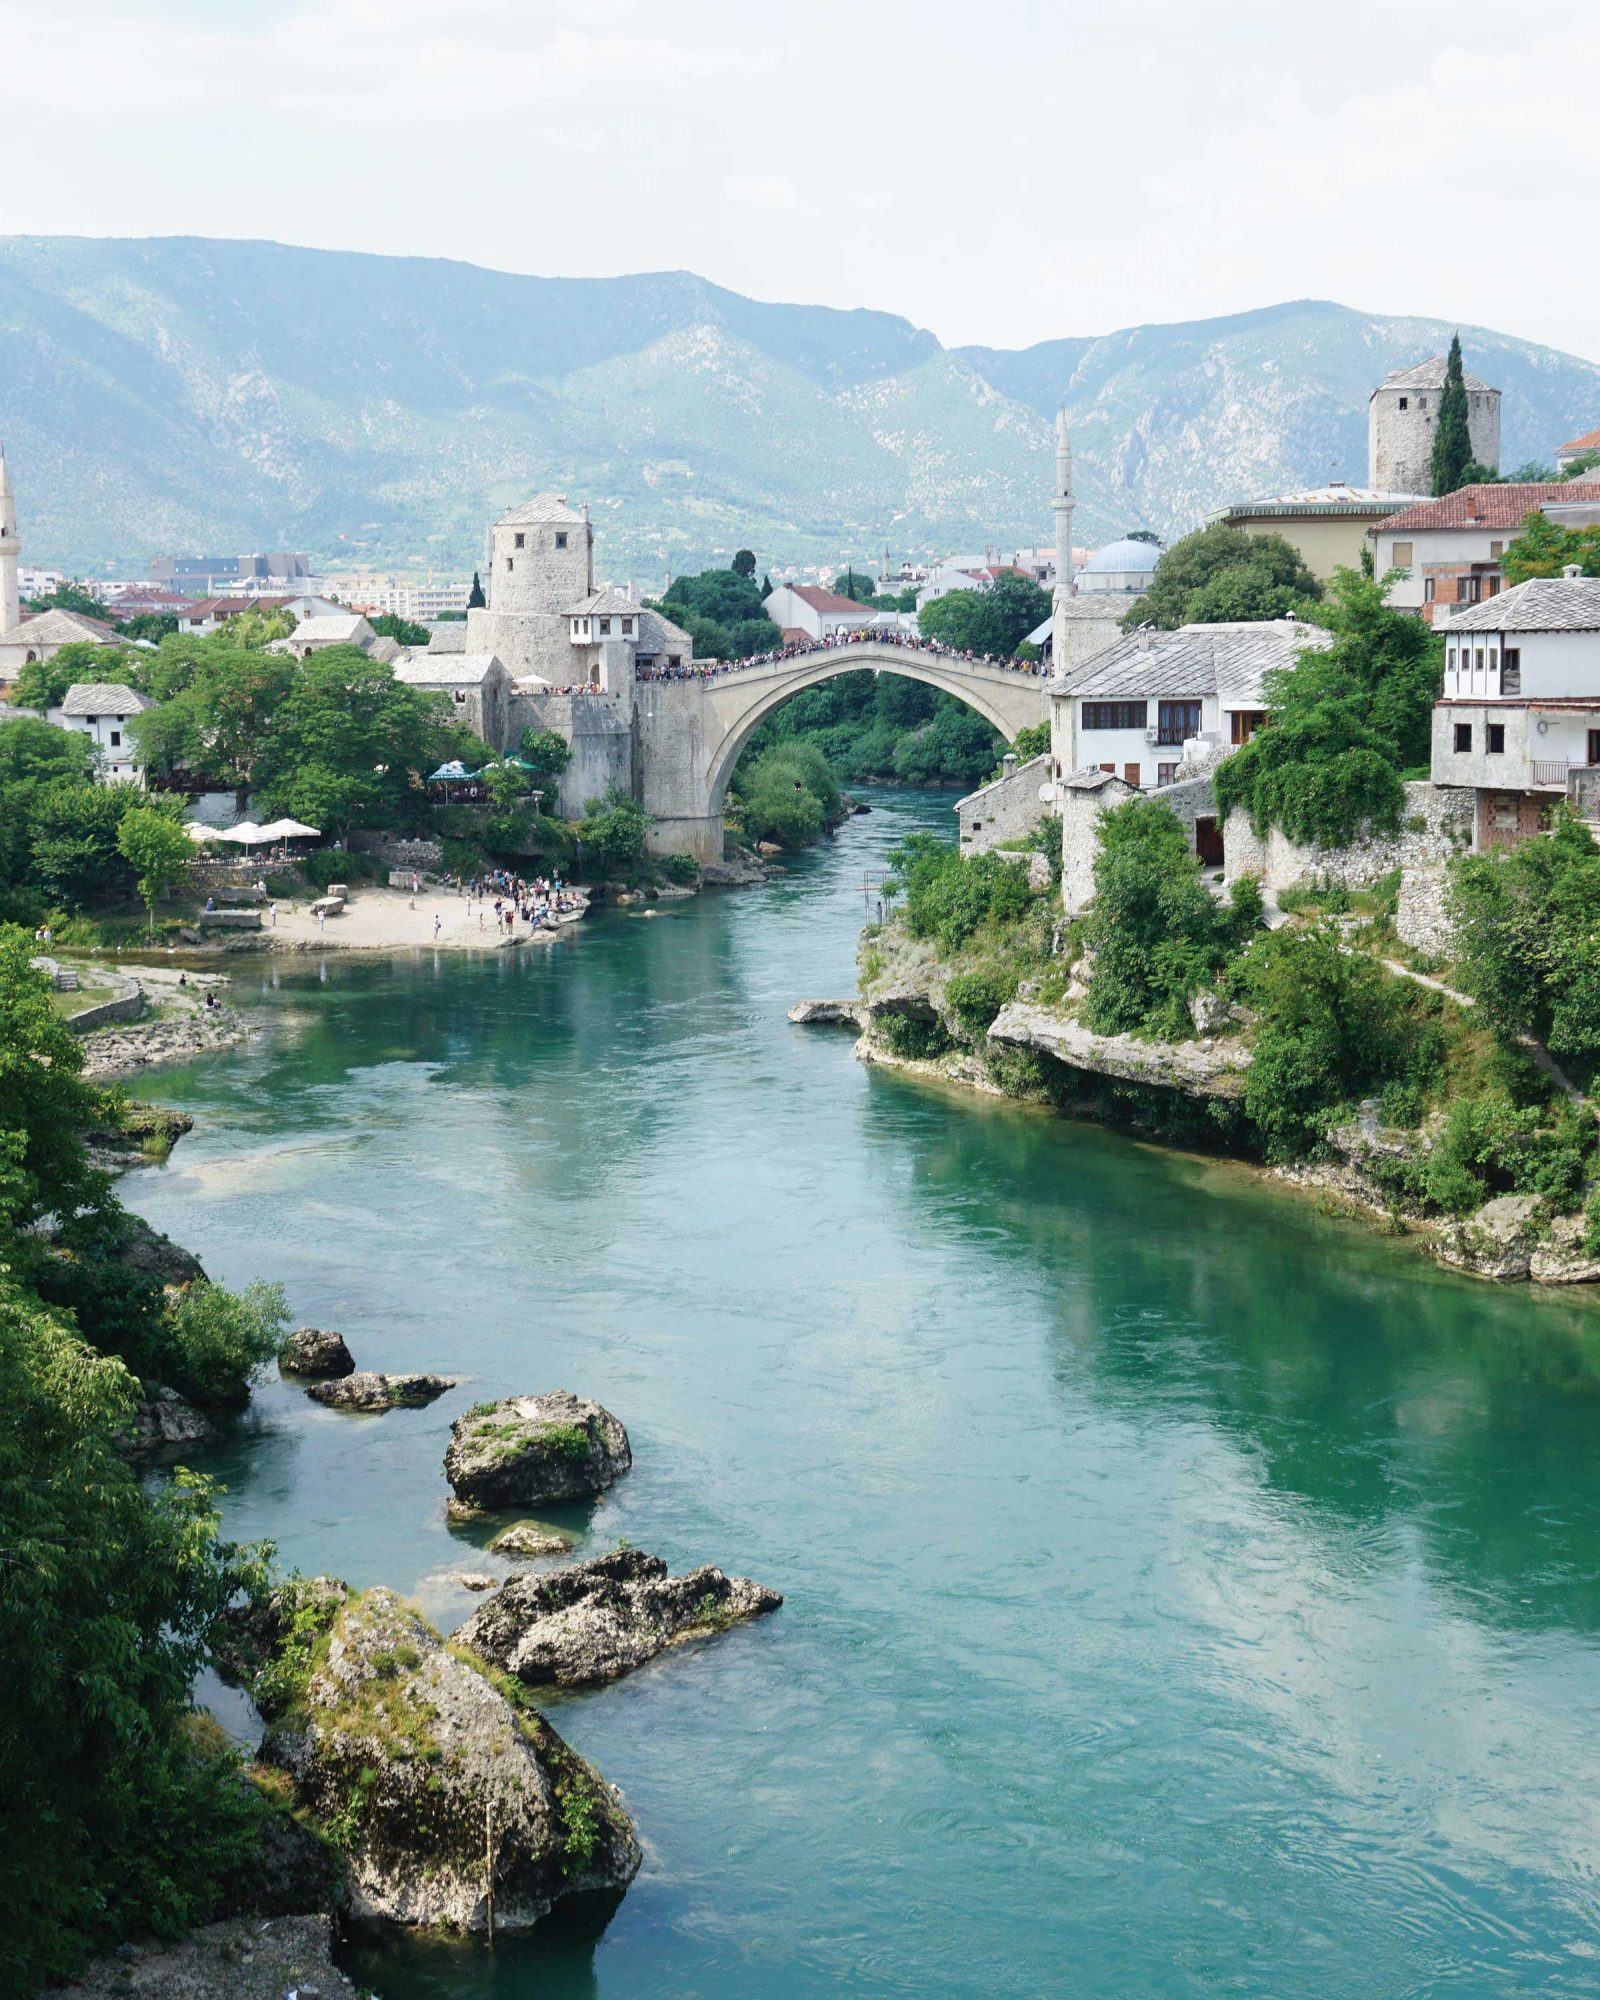 travel-honeymoon-diaries-mostar-bosnia-river-s112955.jpg